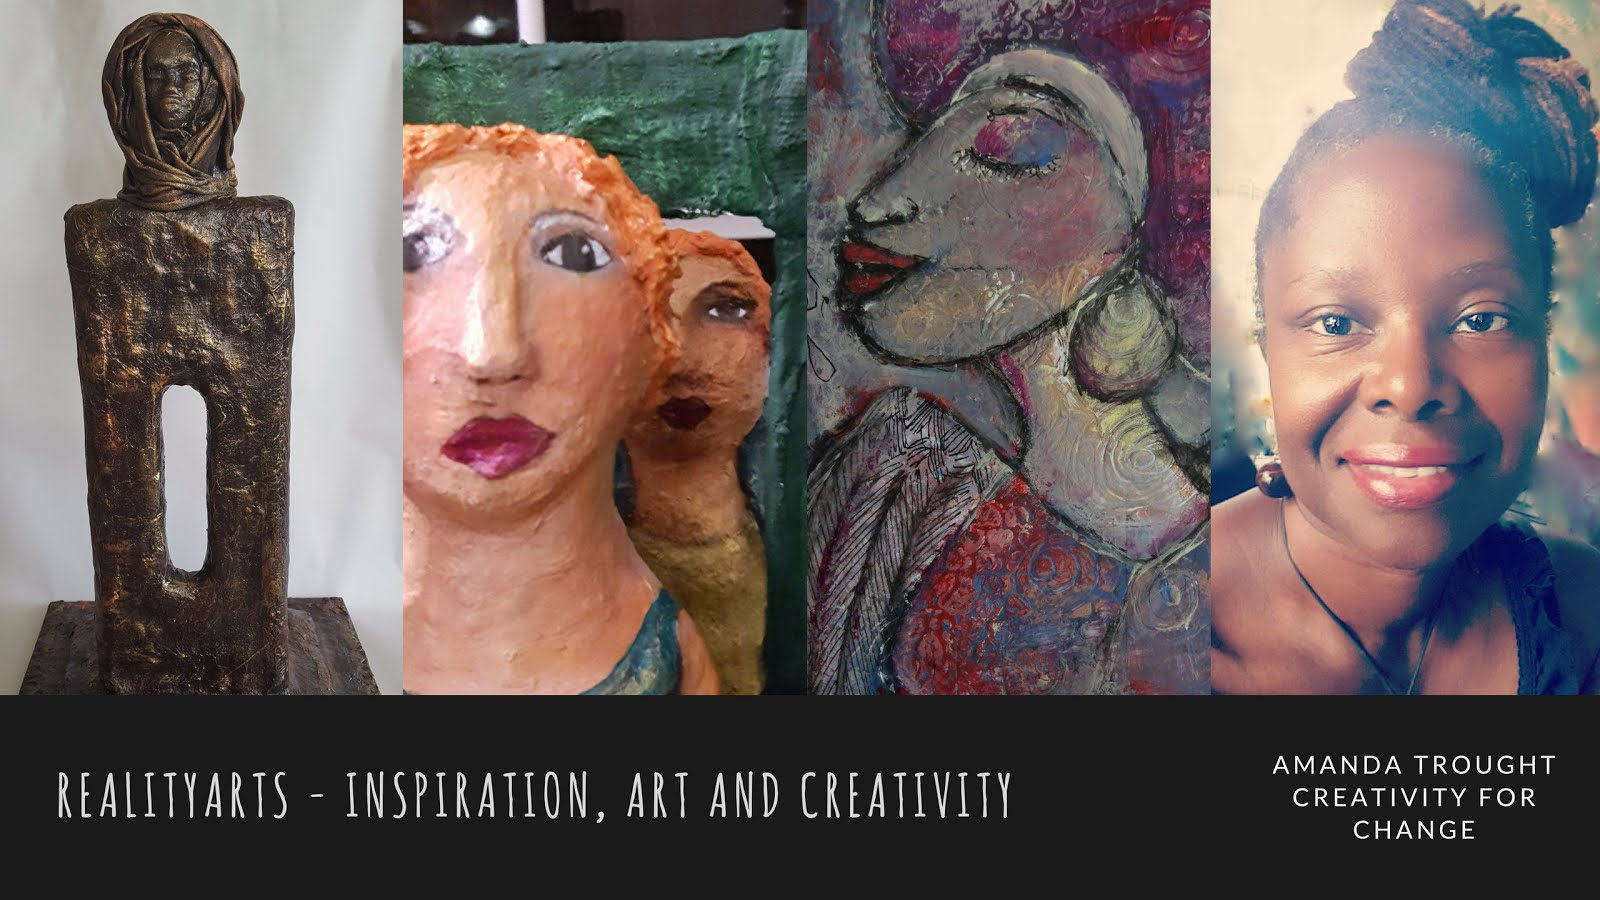 Realityarts - Inspiration, Art and Creativity